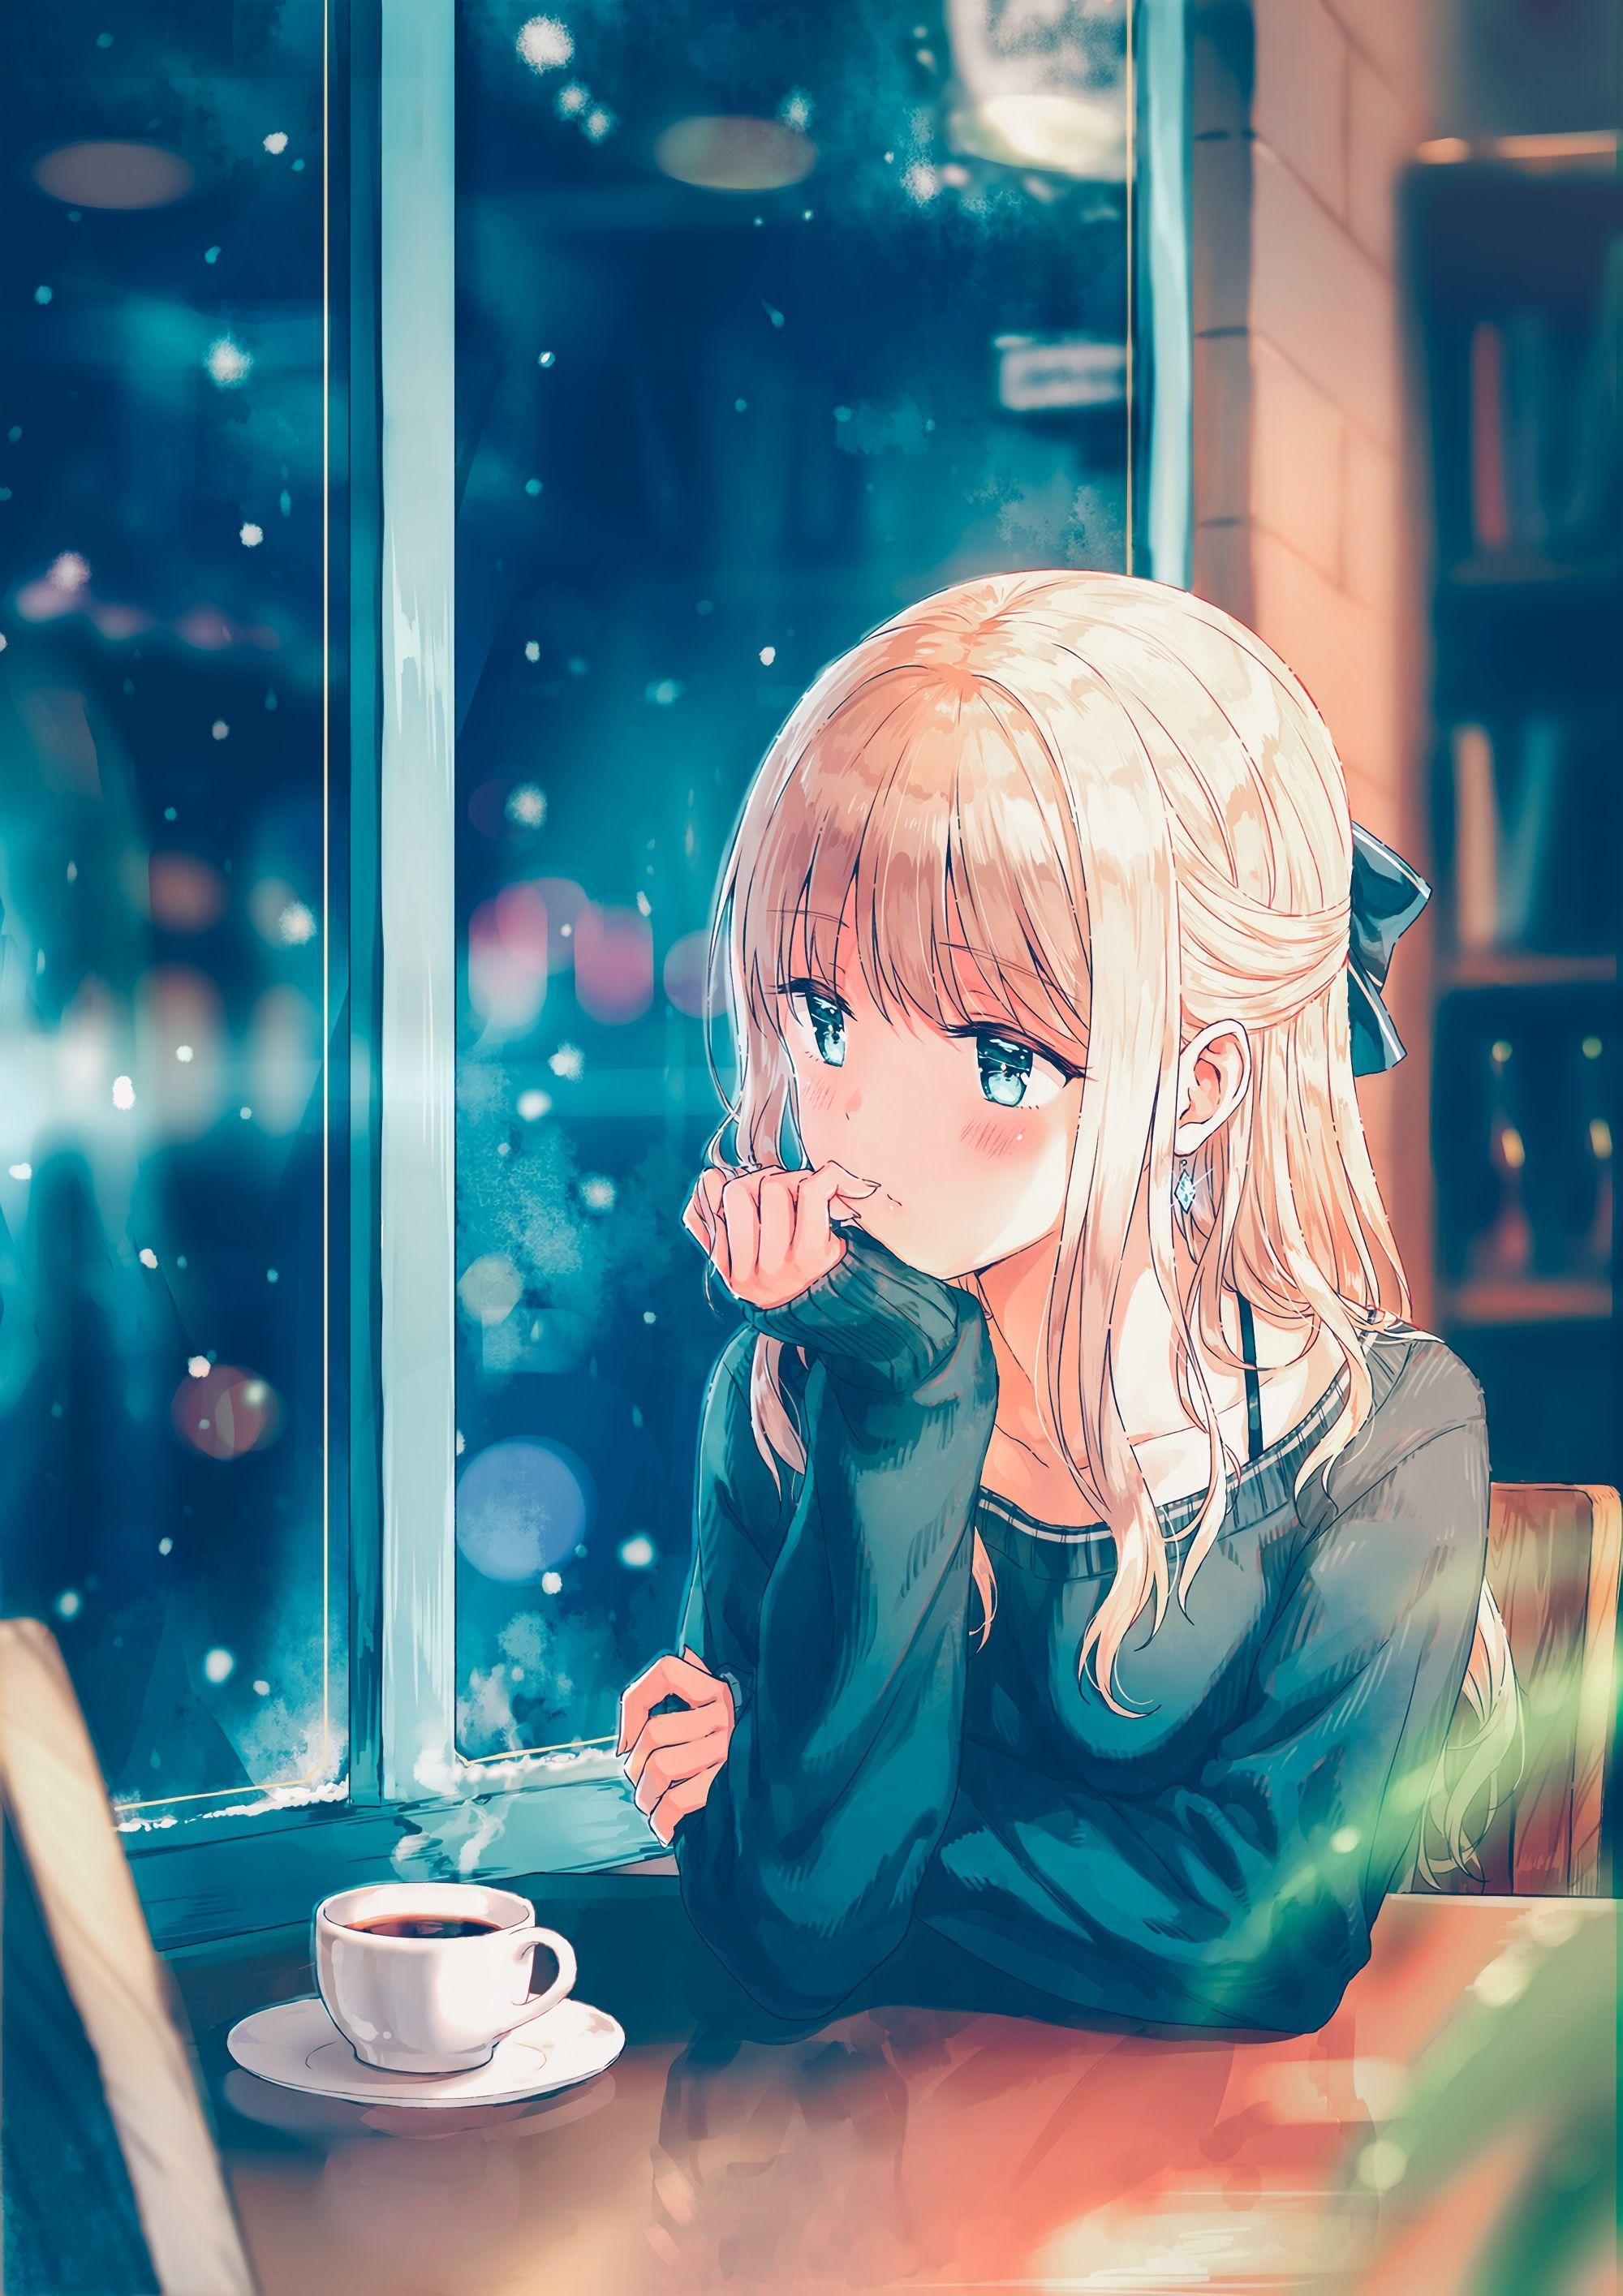 Animated Girls Wallpapers Wallpaper Cave